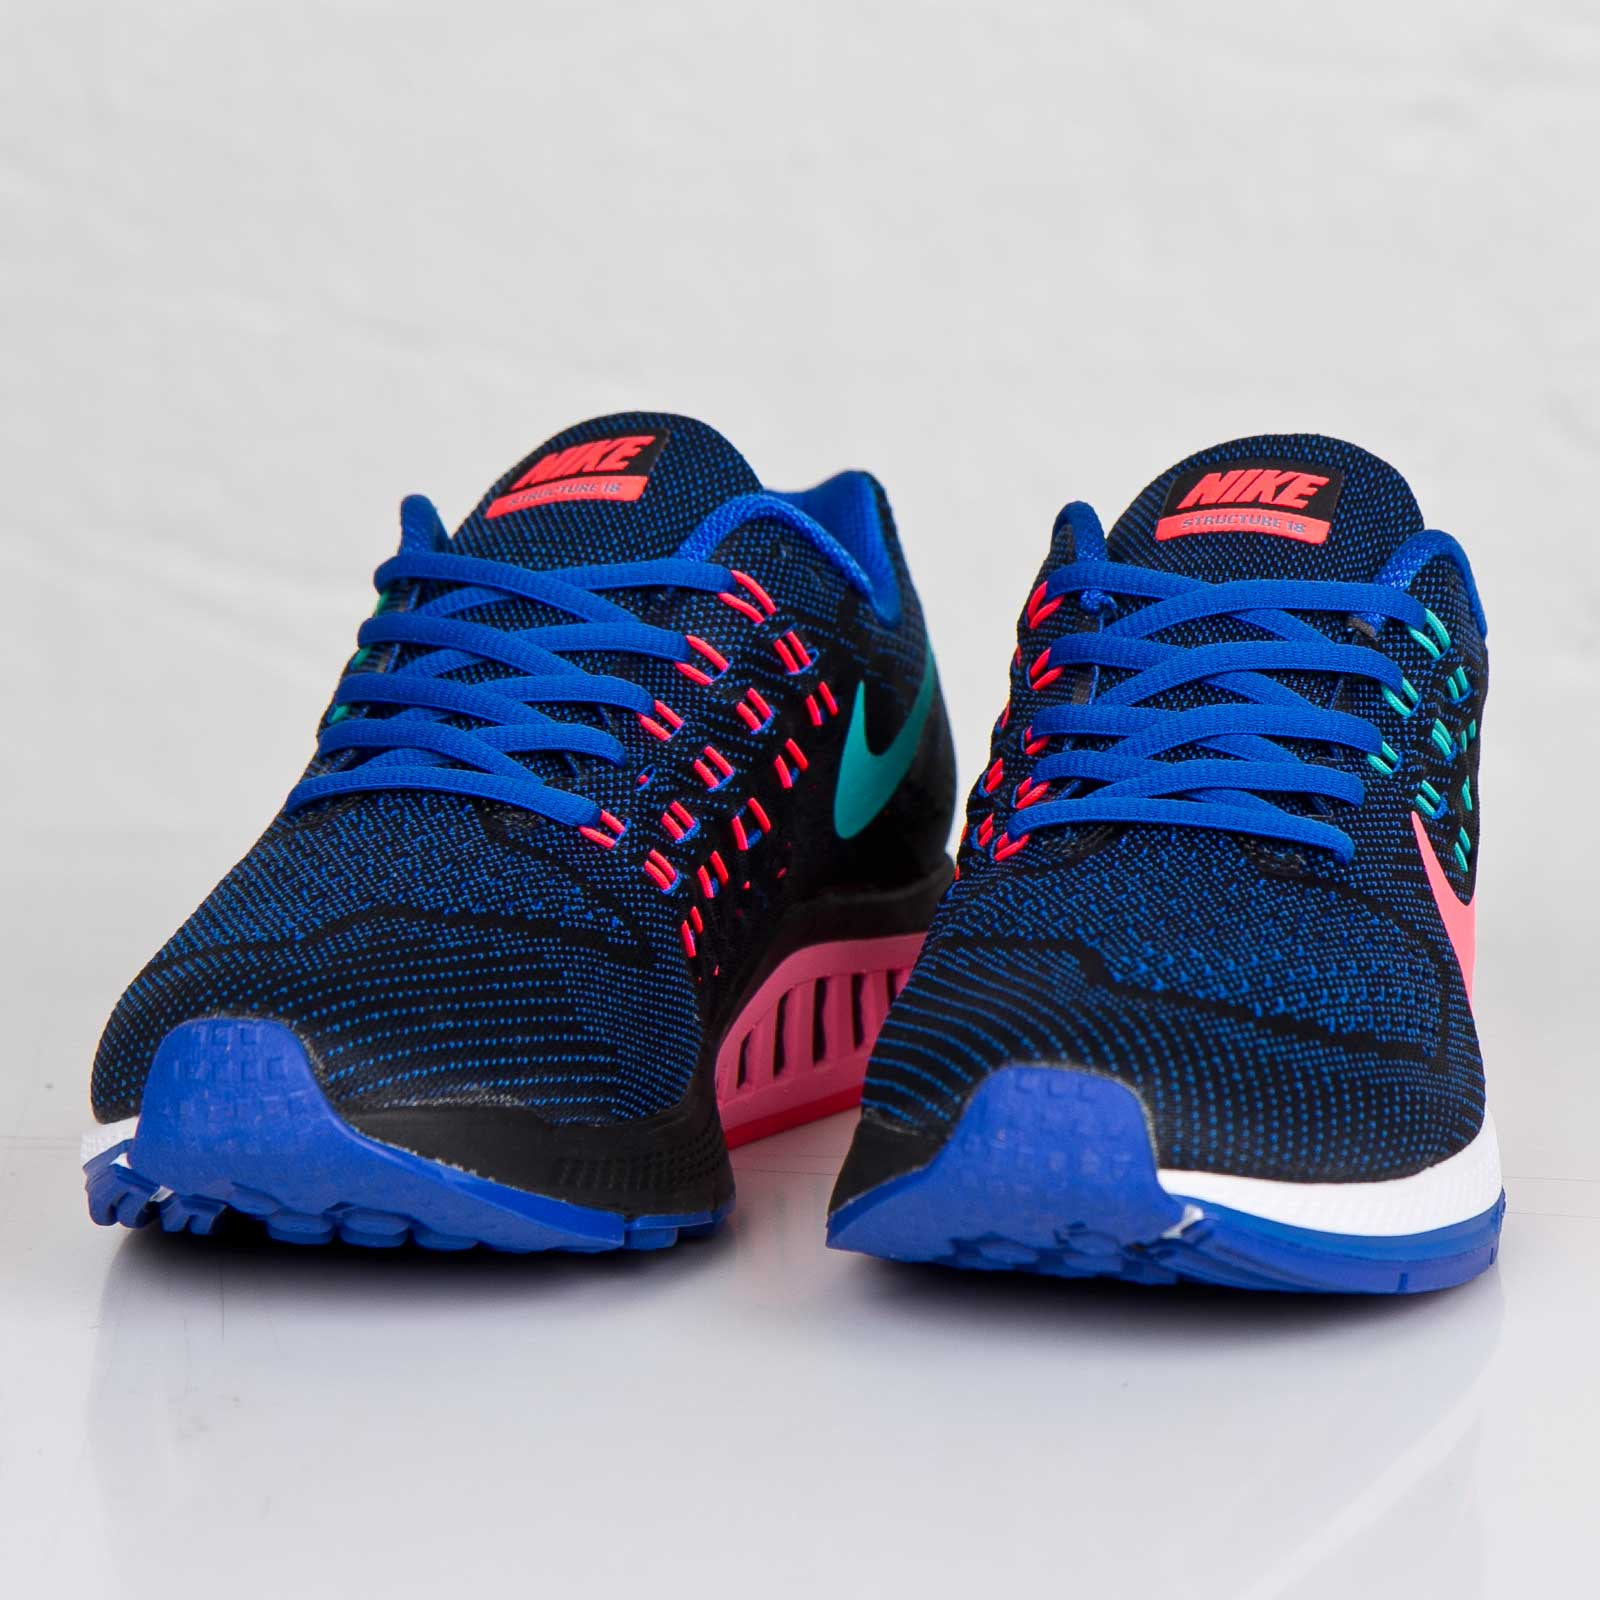 huge selection of 6e4d5 8943f ... uk nike air zoom structure 18 nike air zoom structure 18 3d526 8bbea